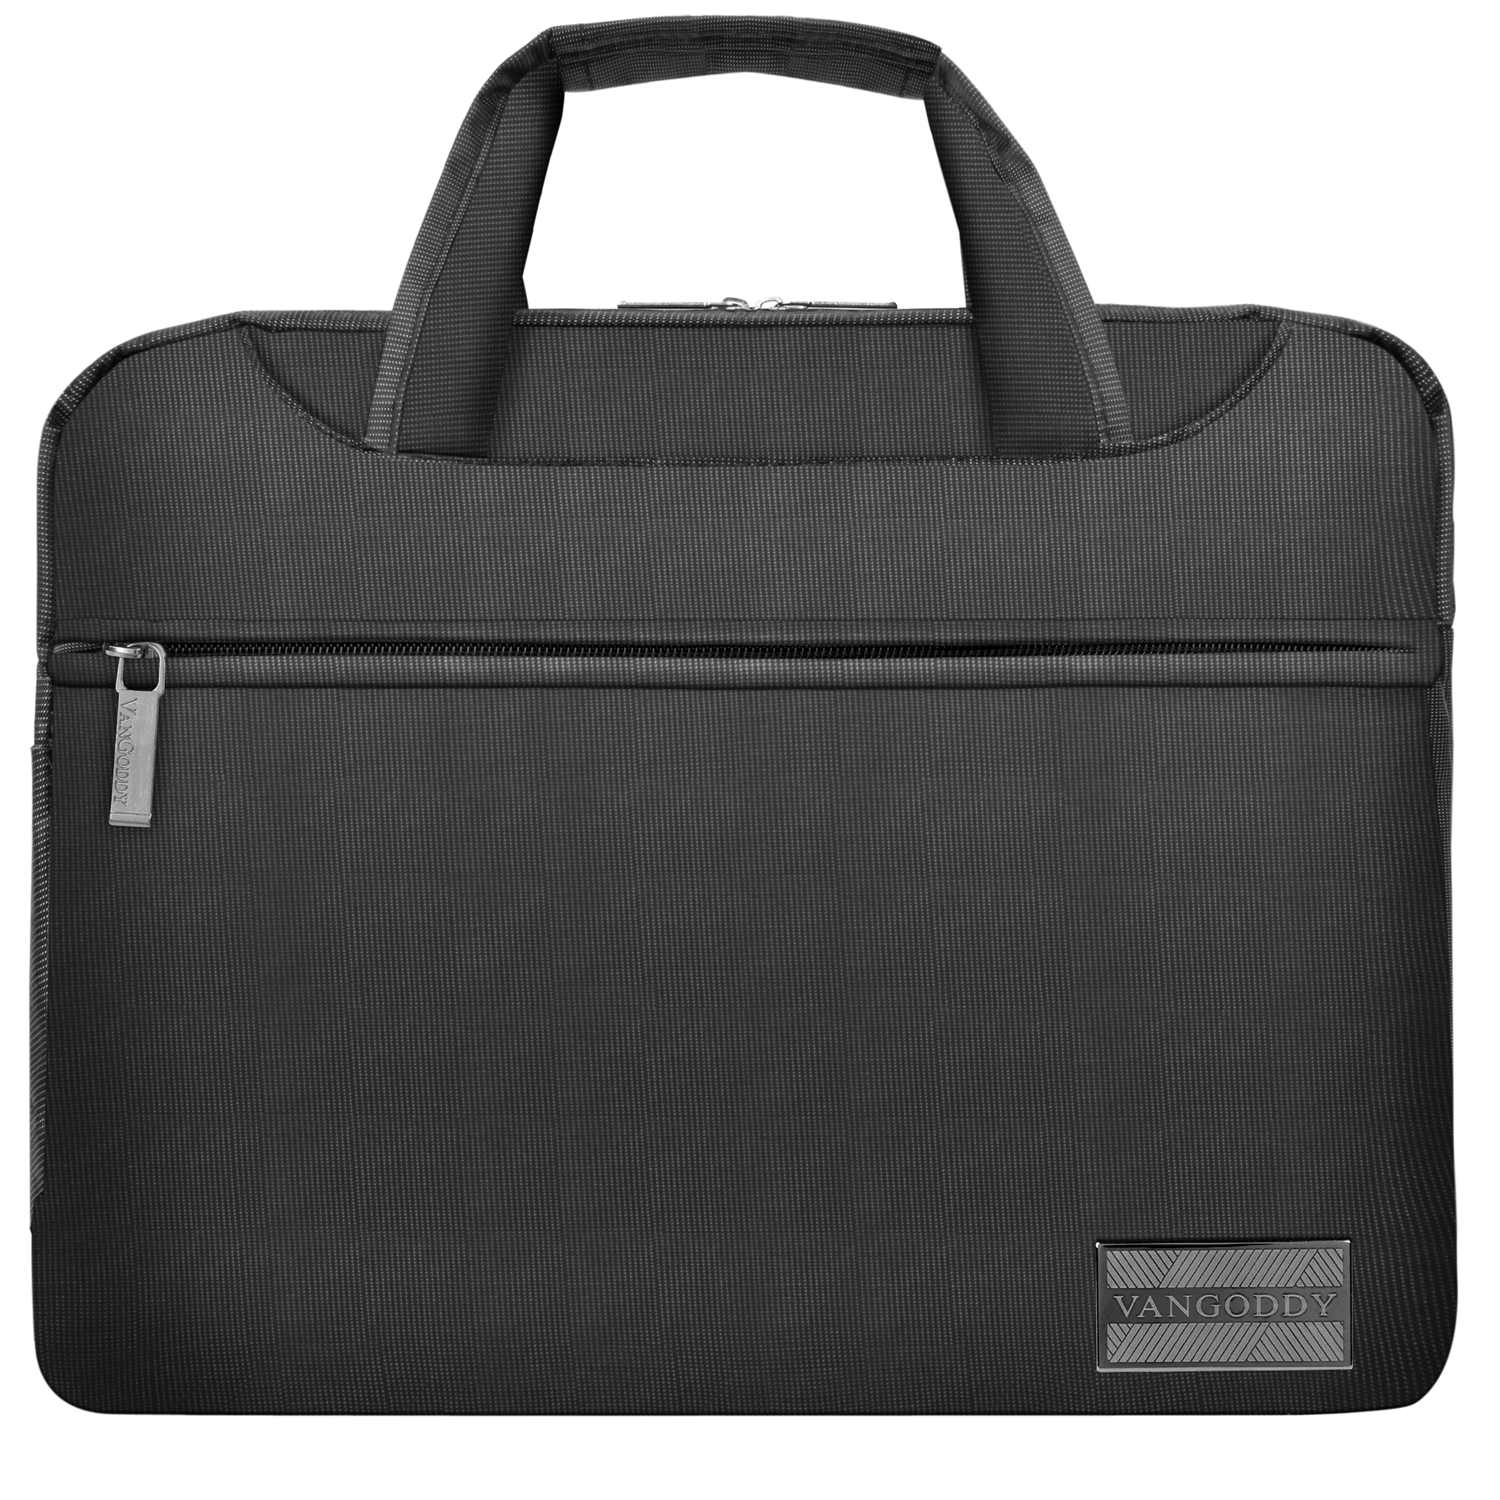 """VANGODDY Premium NineO Student, Business, Travel Messenger Laptop Bag fits Acer Laptops 13"""", 13.3"""", 14"""" up to (13.5 x 10.75 Inches)"""